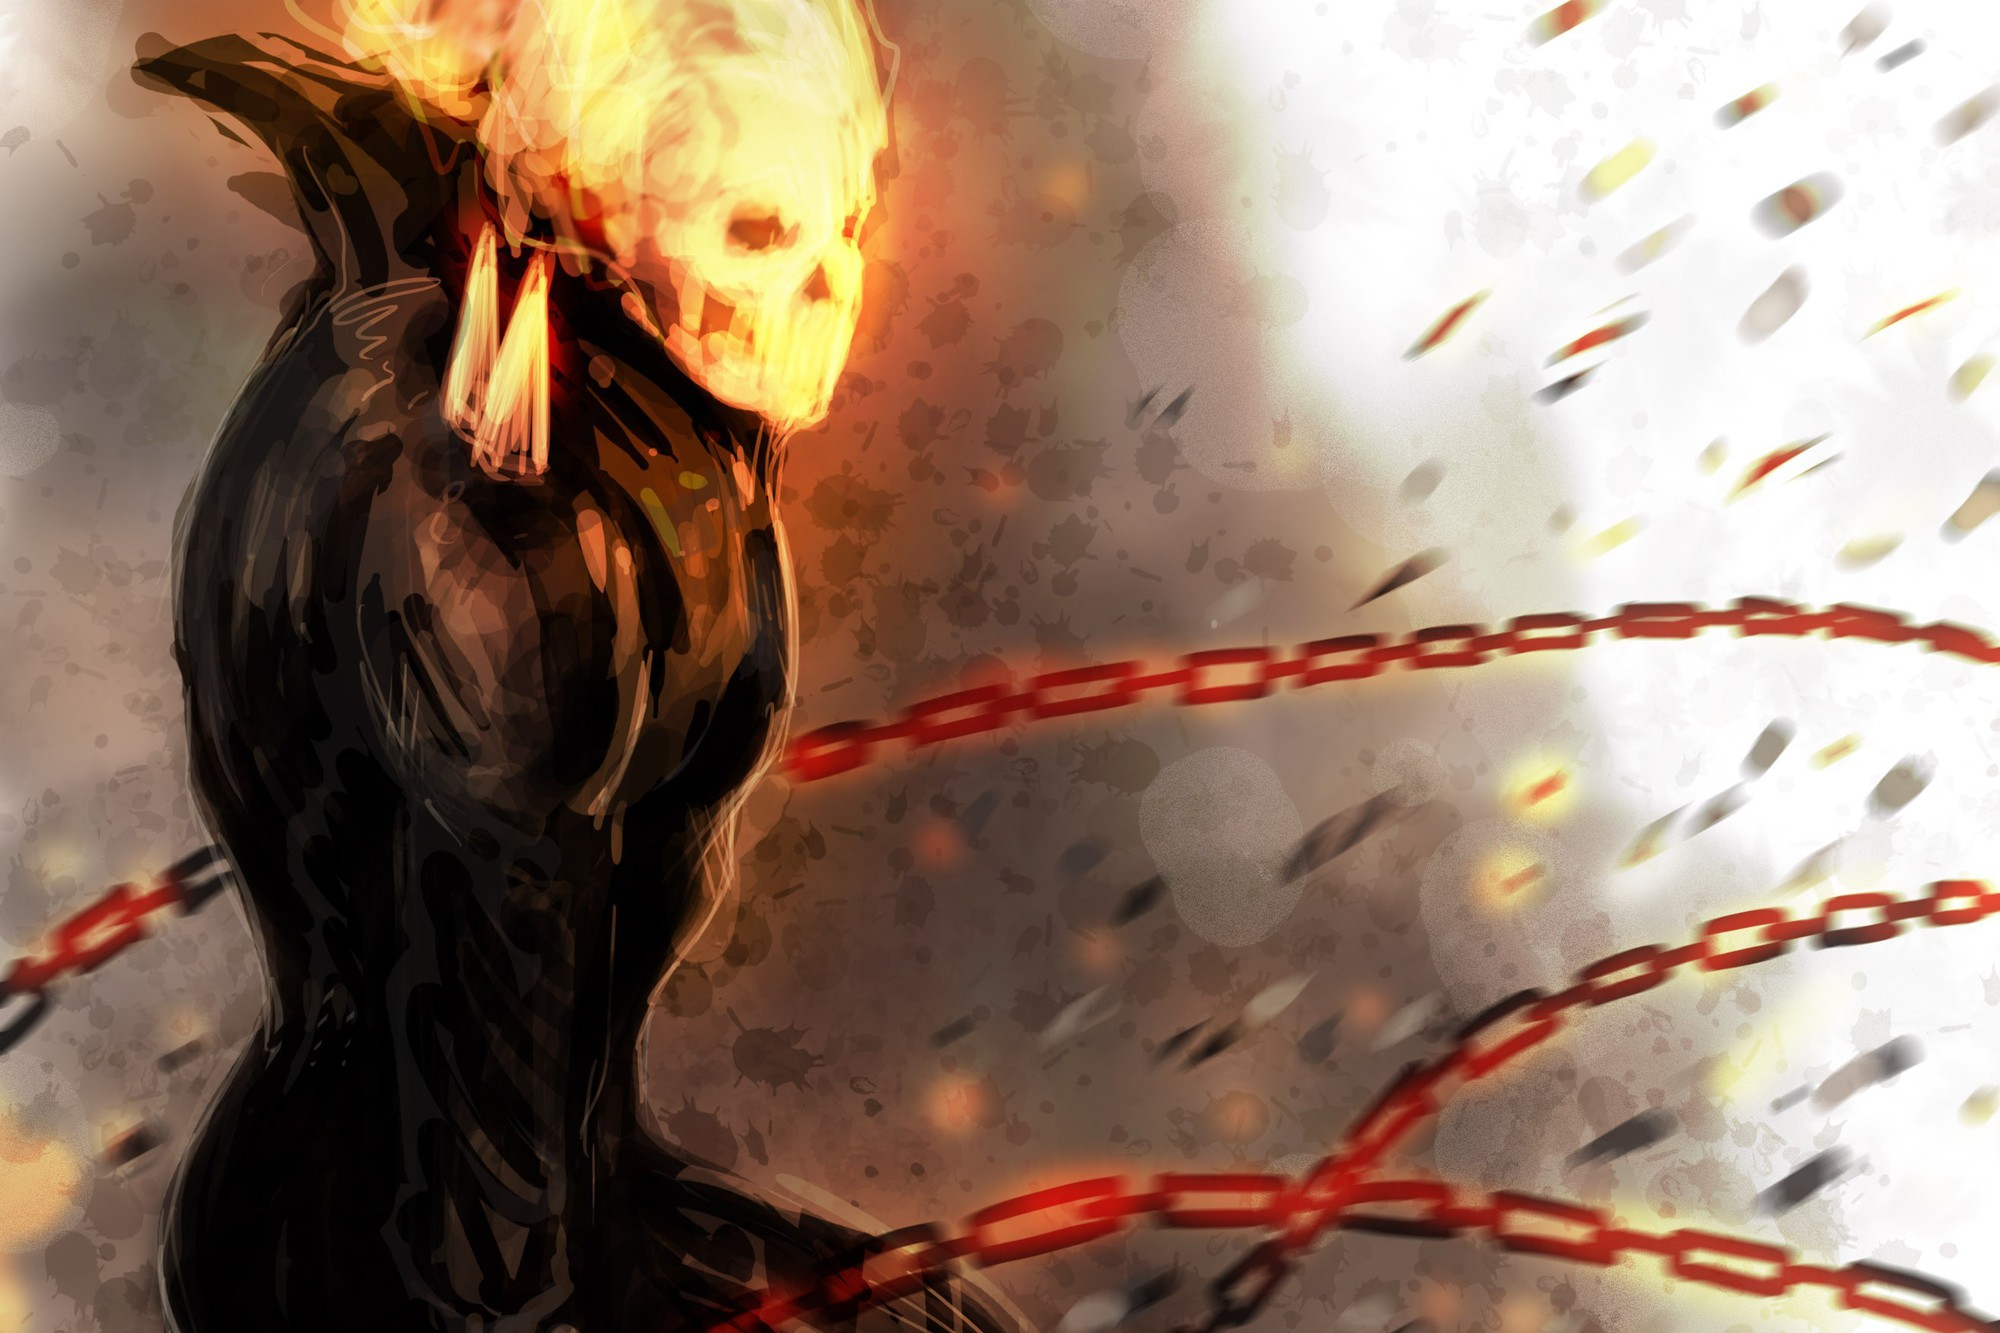 Comics fire ghost rider drawings chains traditional ...